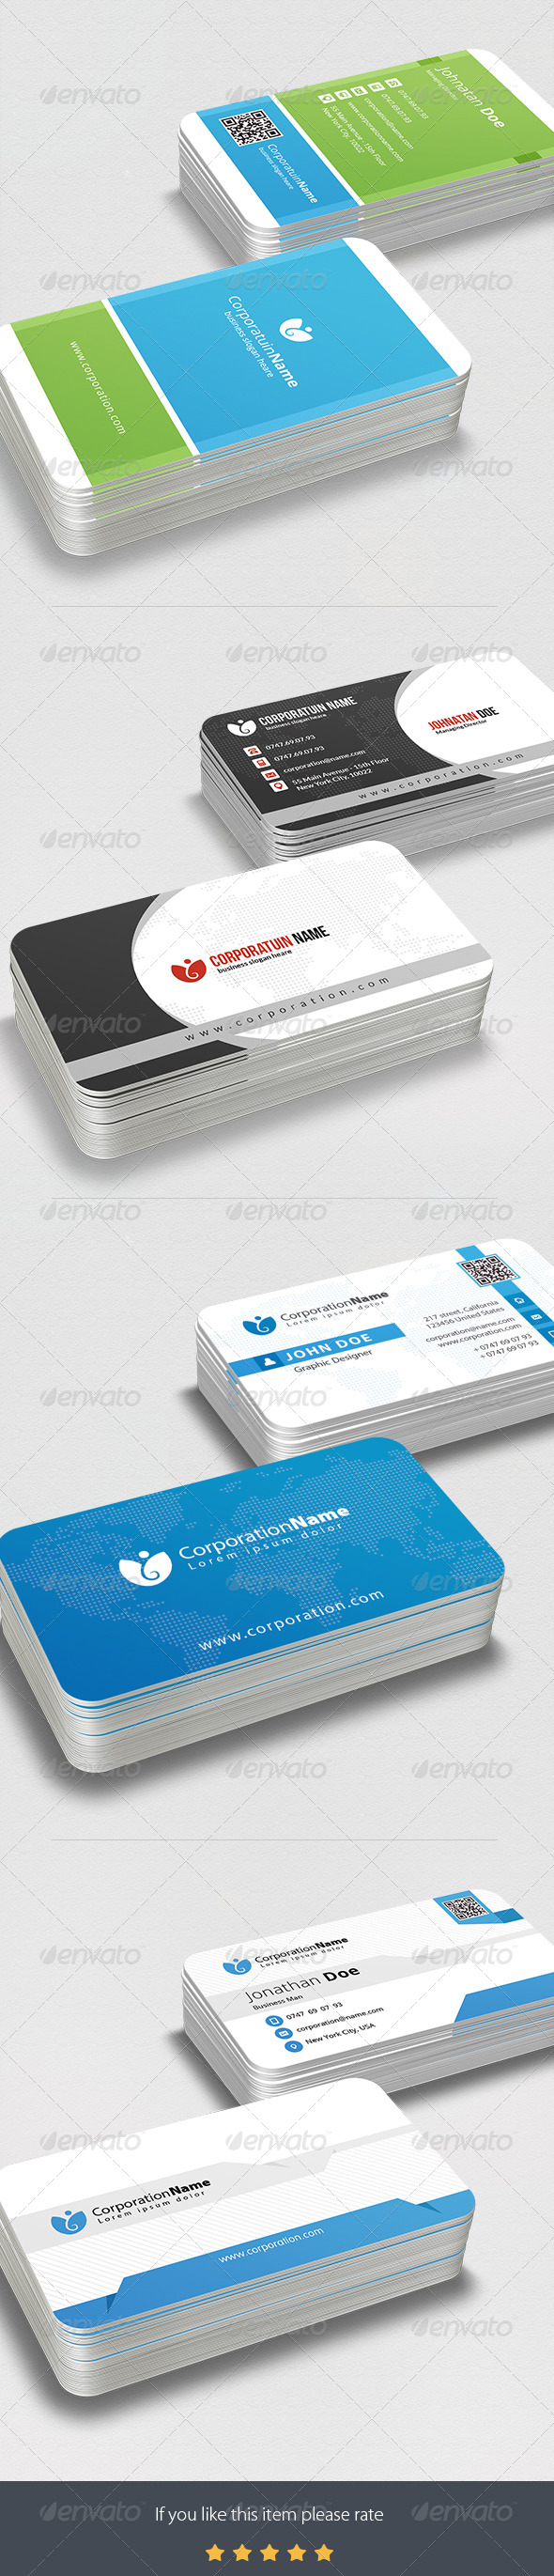 GraphicRiver 4 in 1 Multipurpose Business Card Bundle 7773709